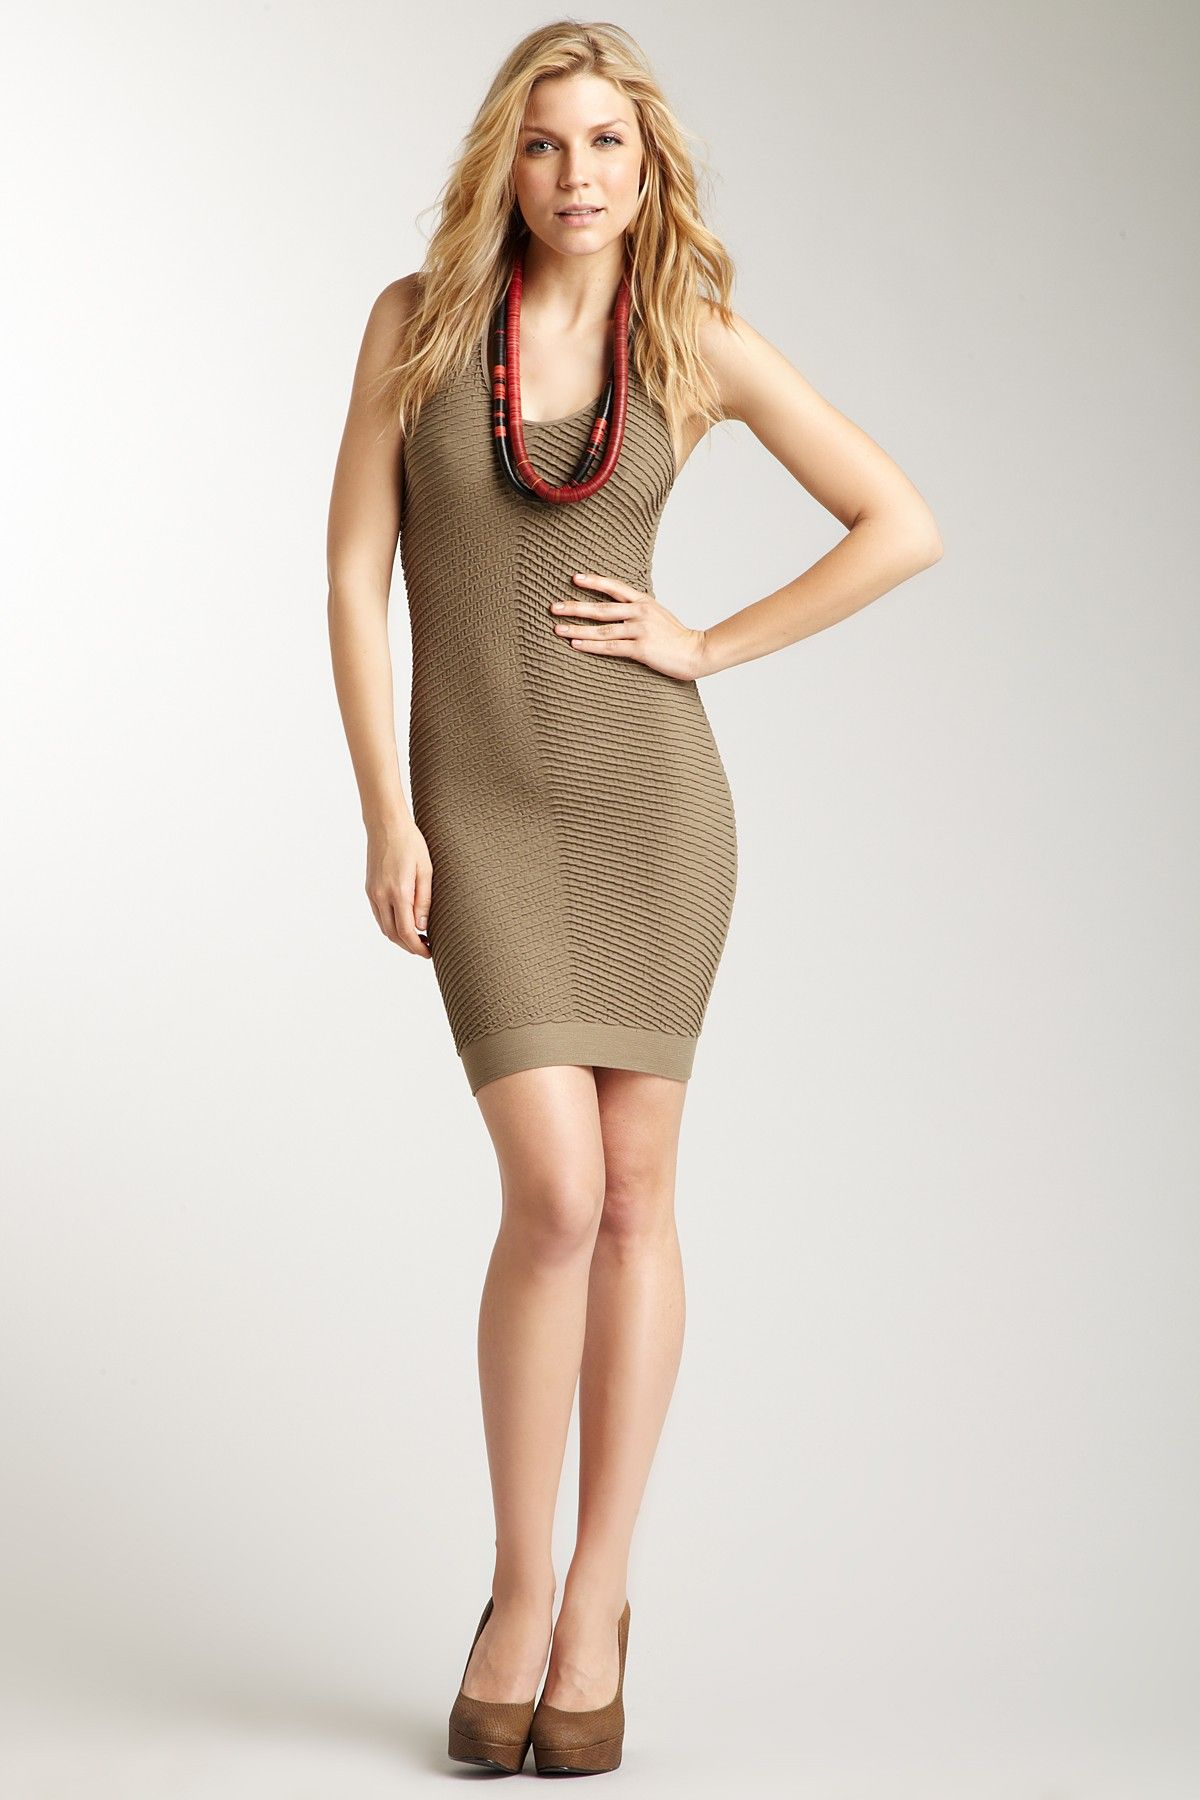 Taupe Fitted Racer Back Dress Racerback Dress Dresses Casual Chic Style [ 1800 x 1200 Pixel ]